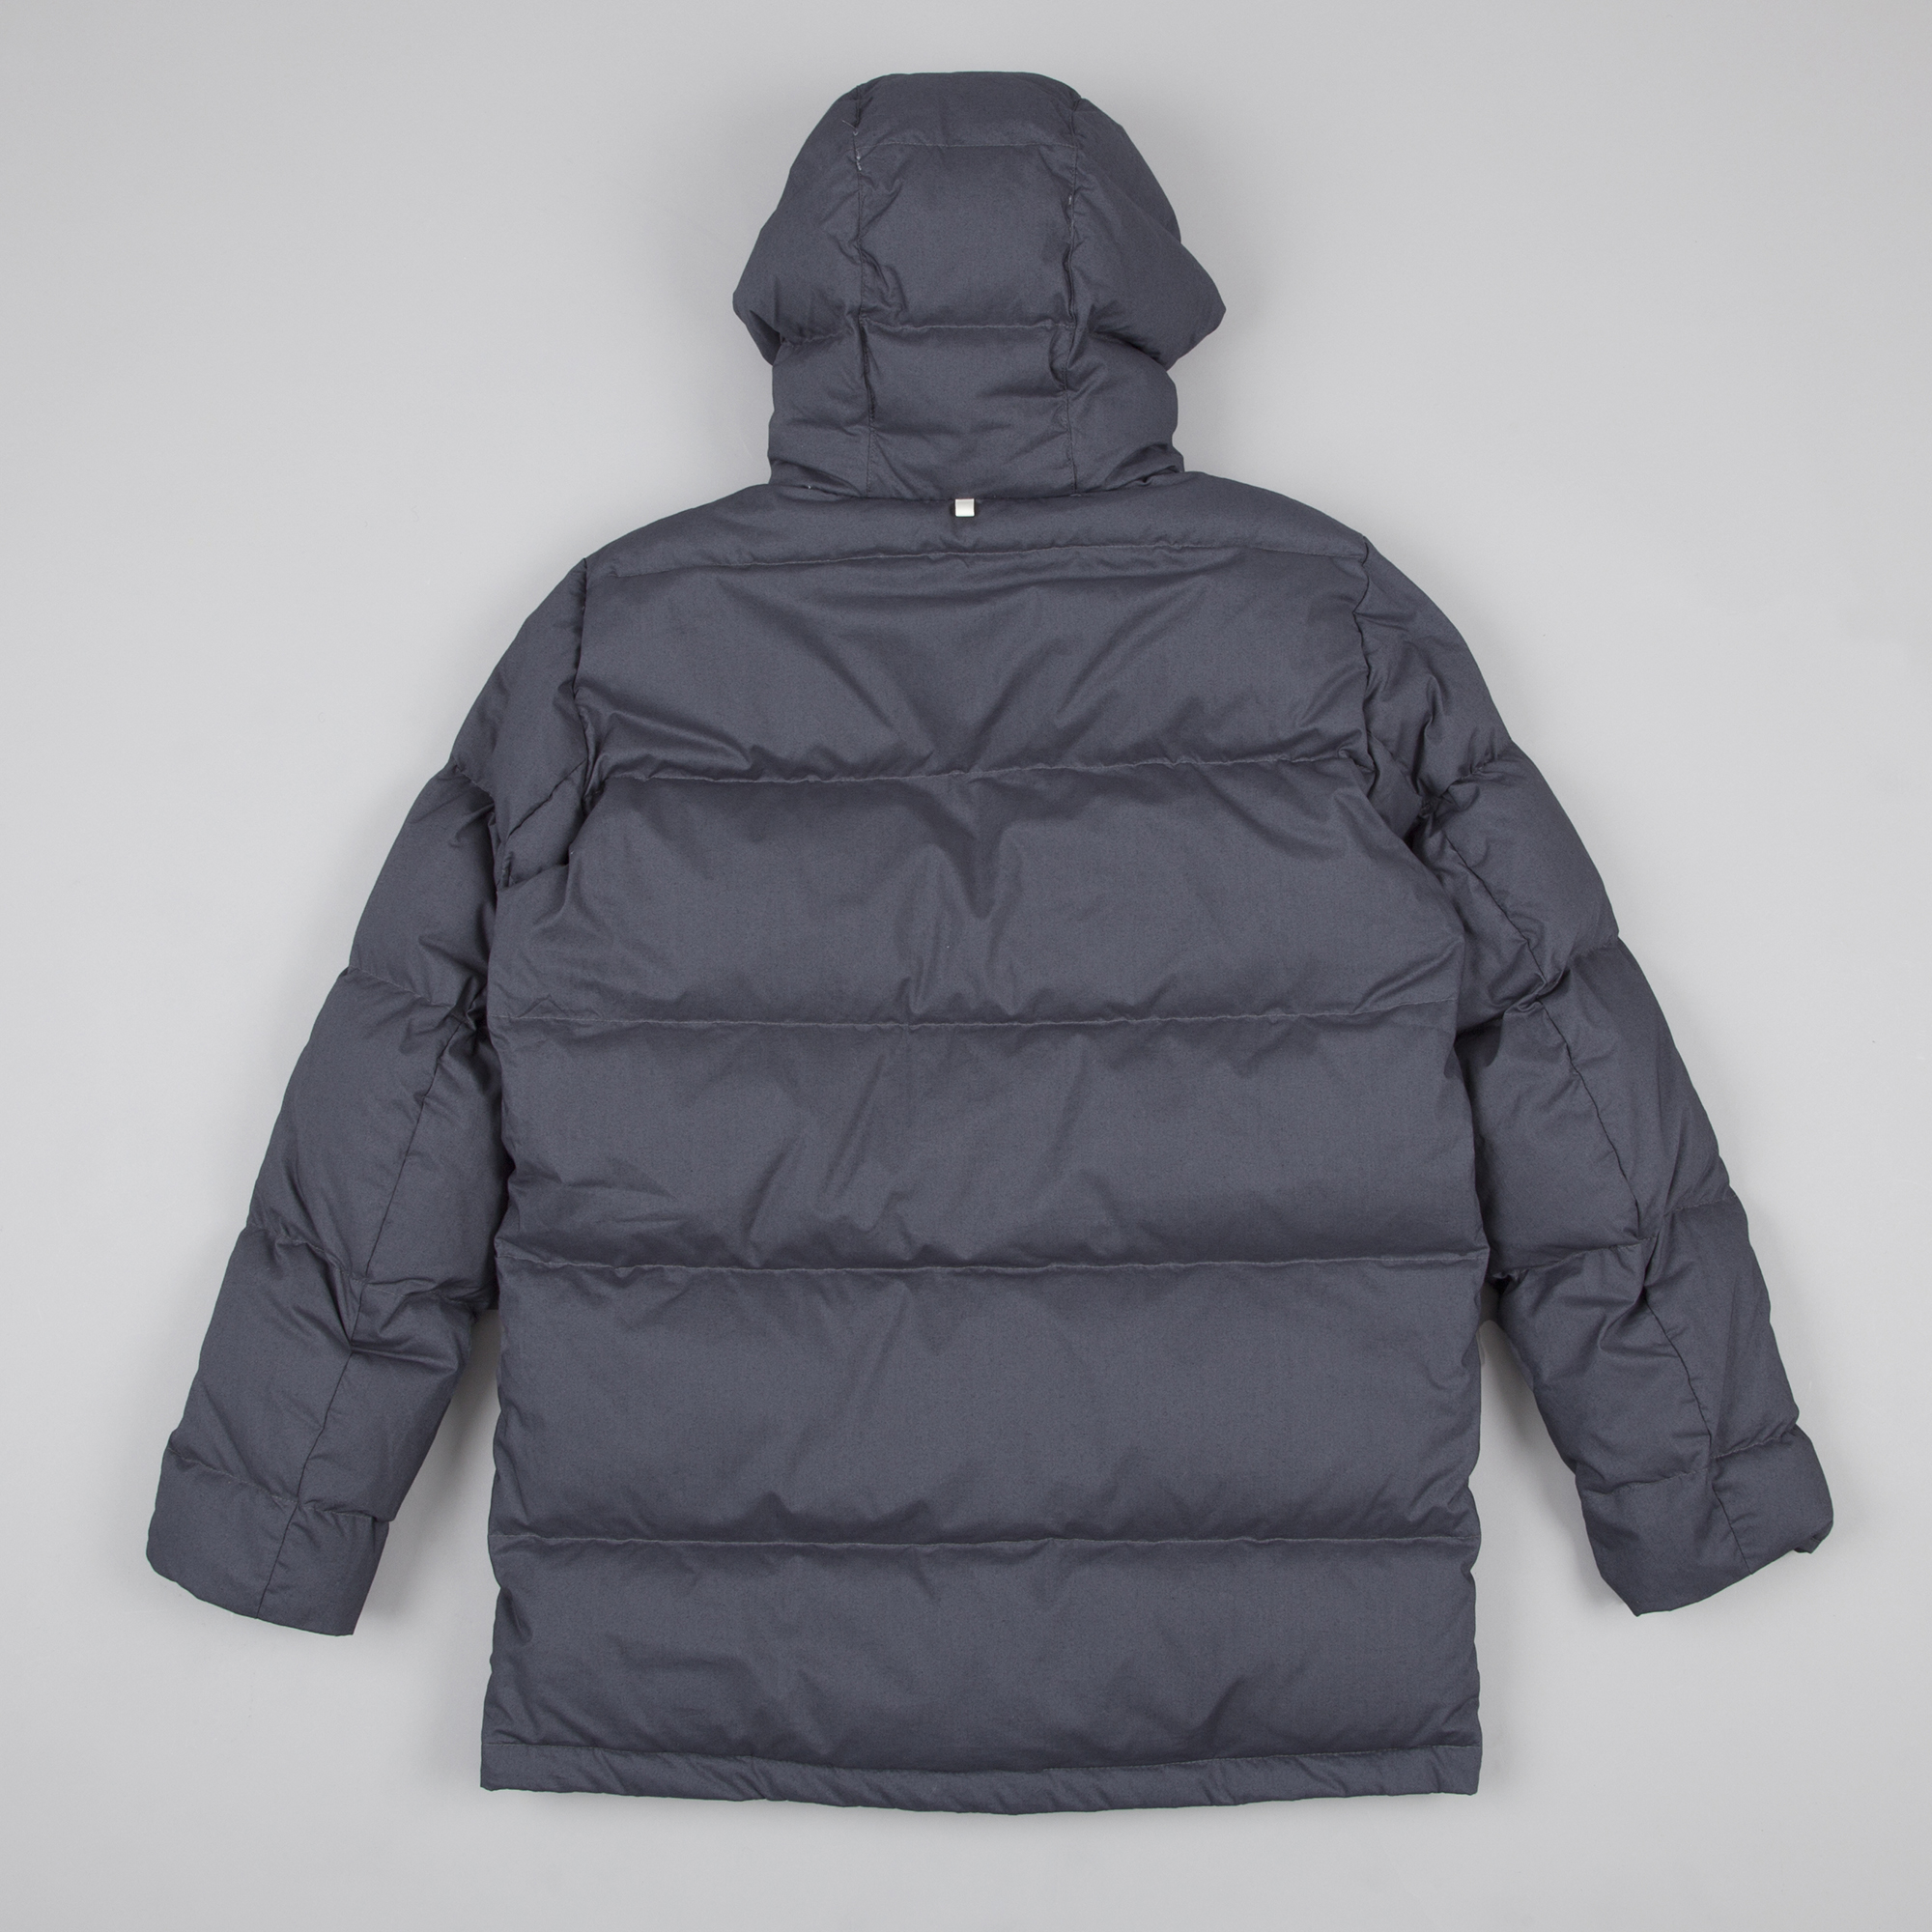 787a3a10c7 Norse Projects Willum Down Jacket - Grey